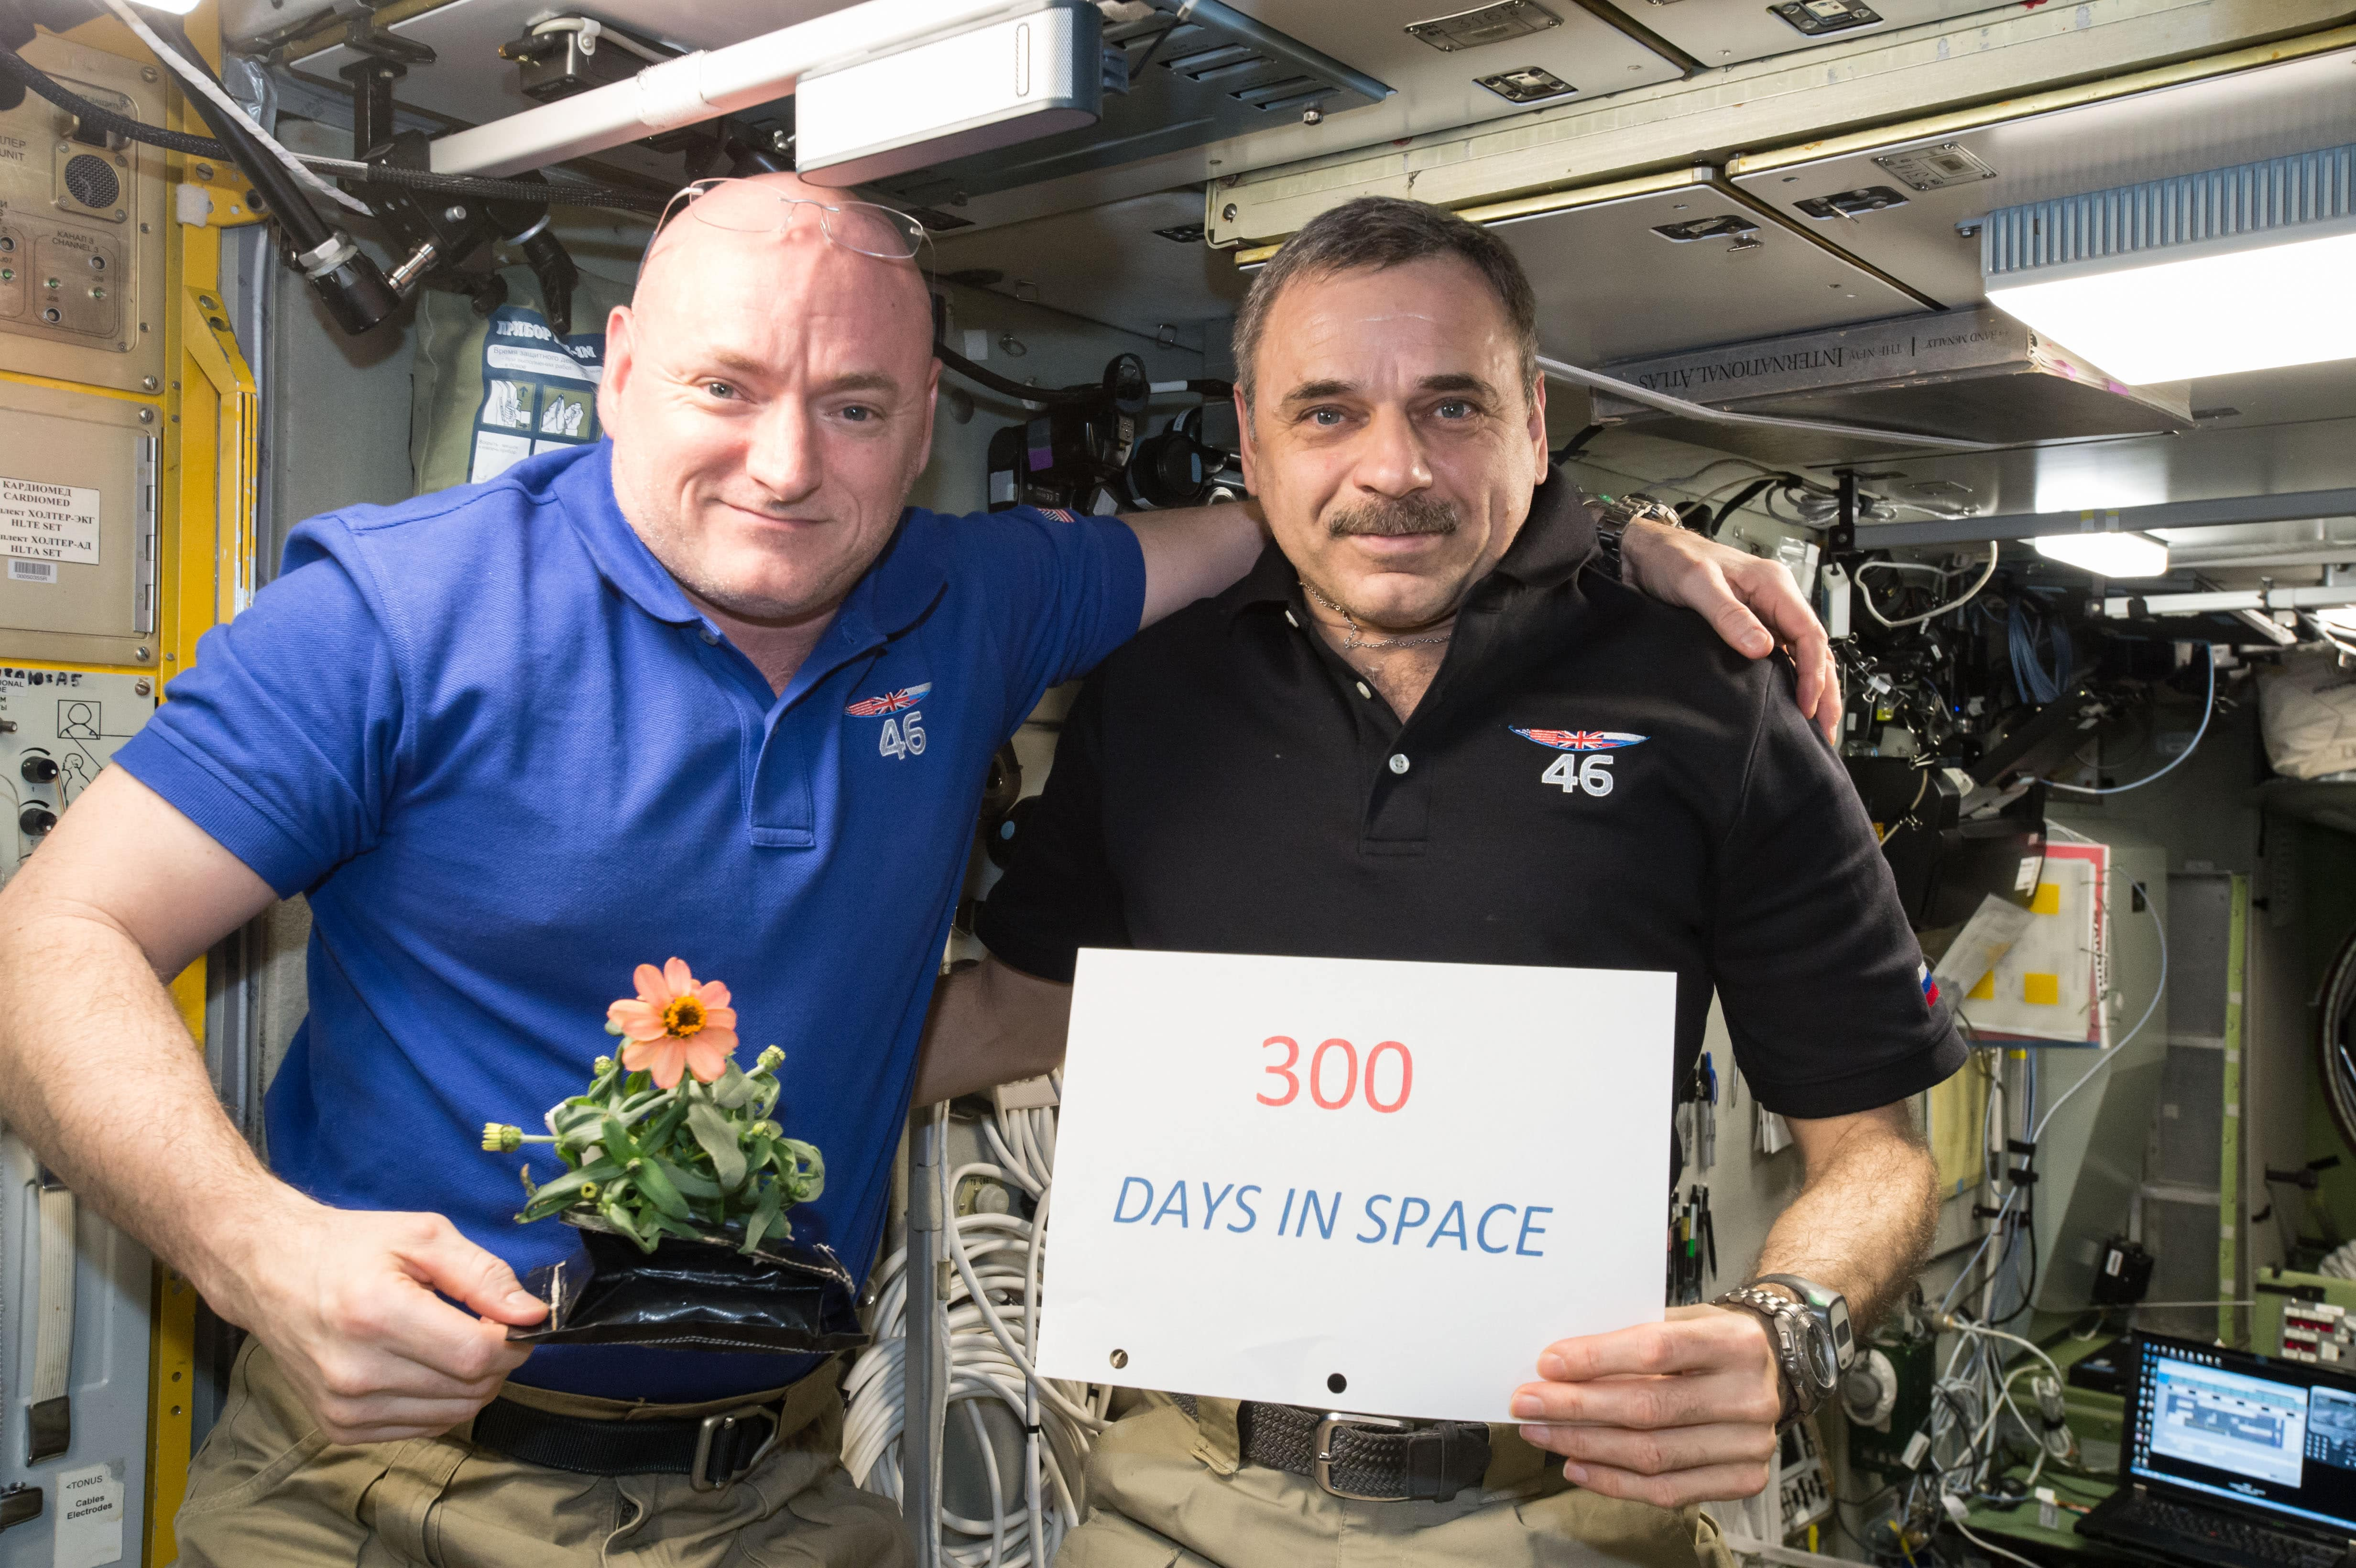 Kelly and Kornienko spent nearly a year in space. NASA.